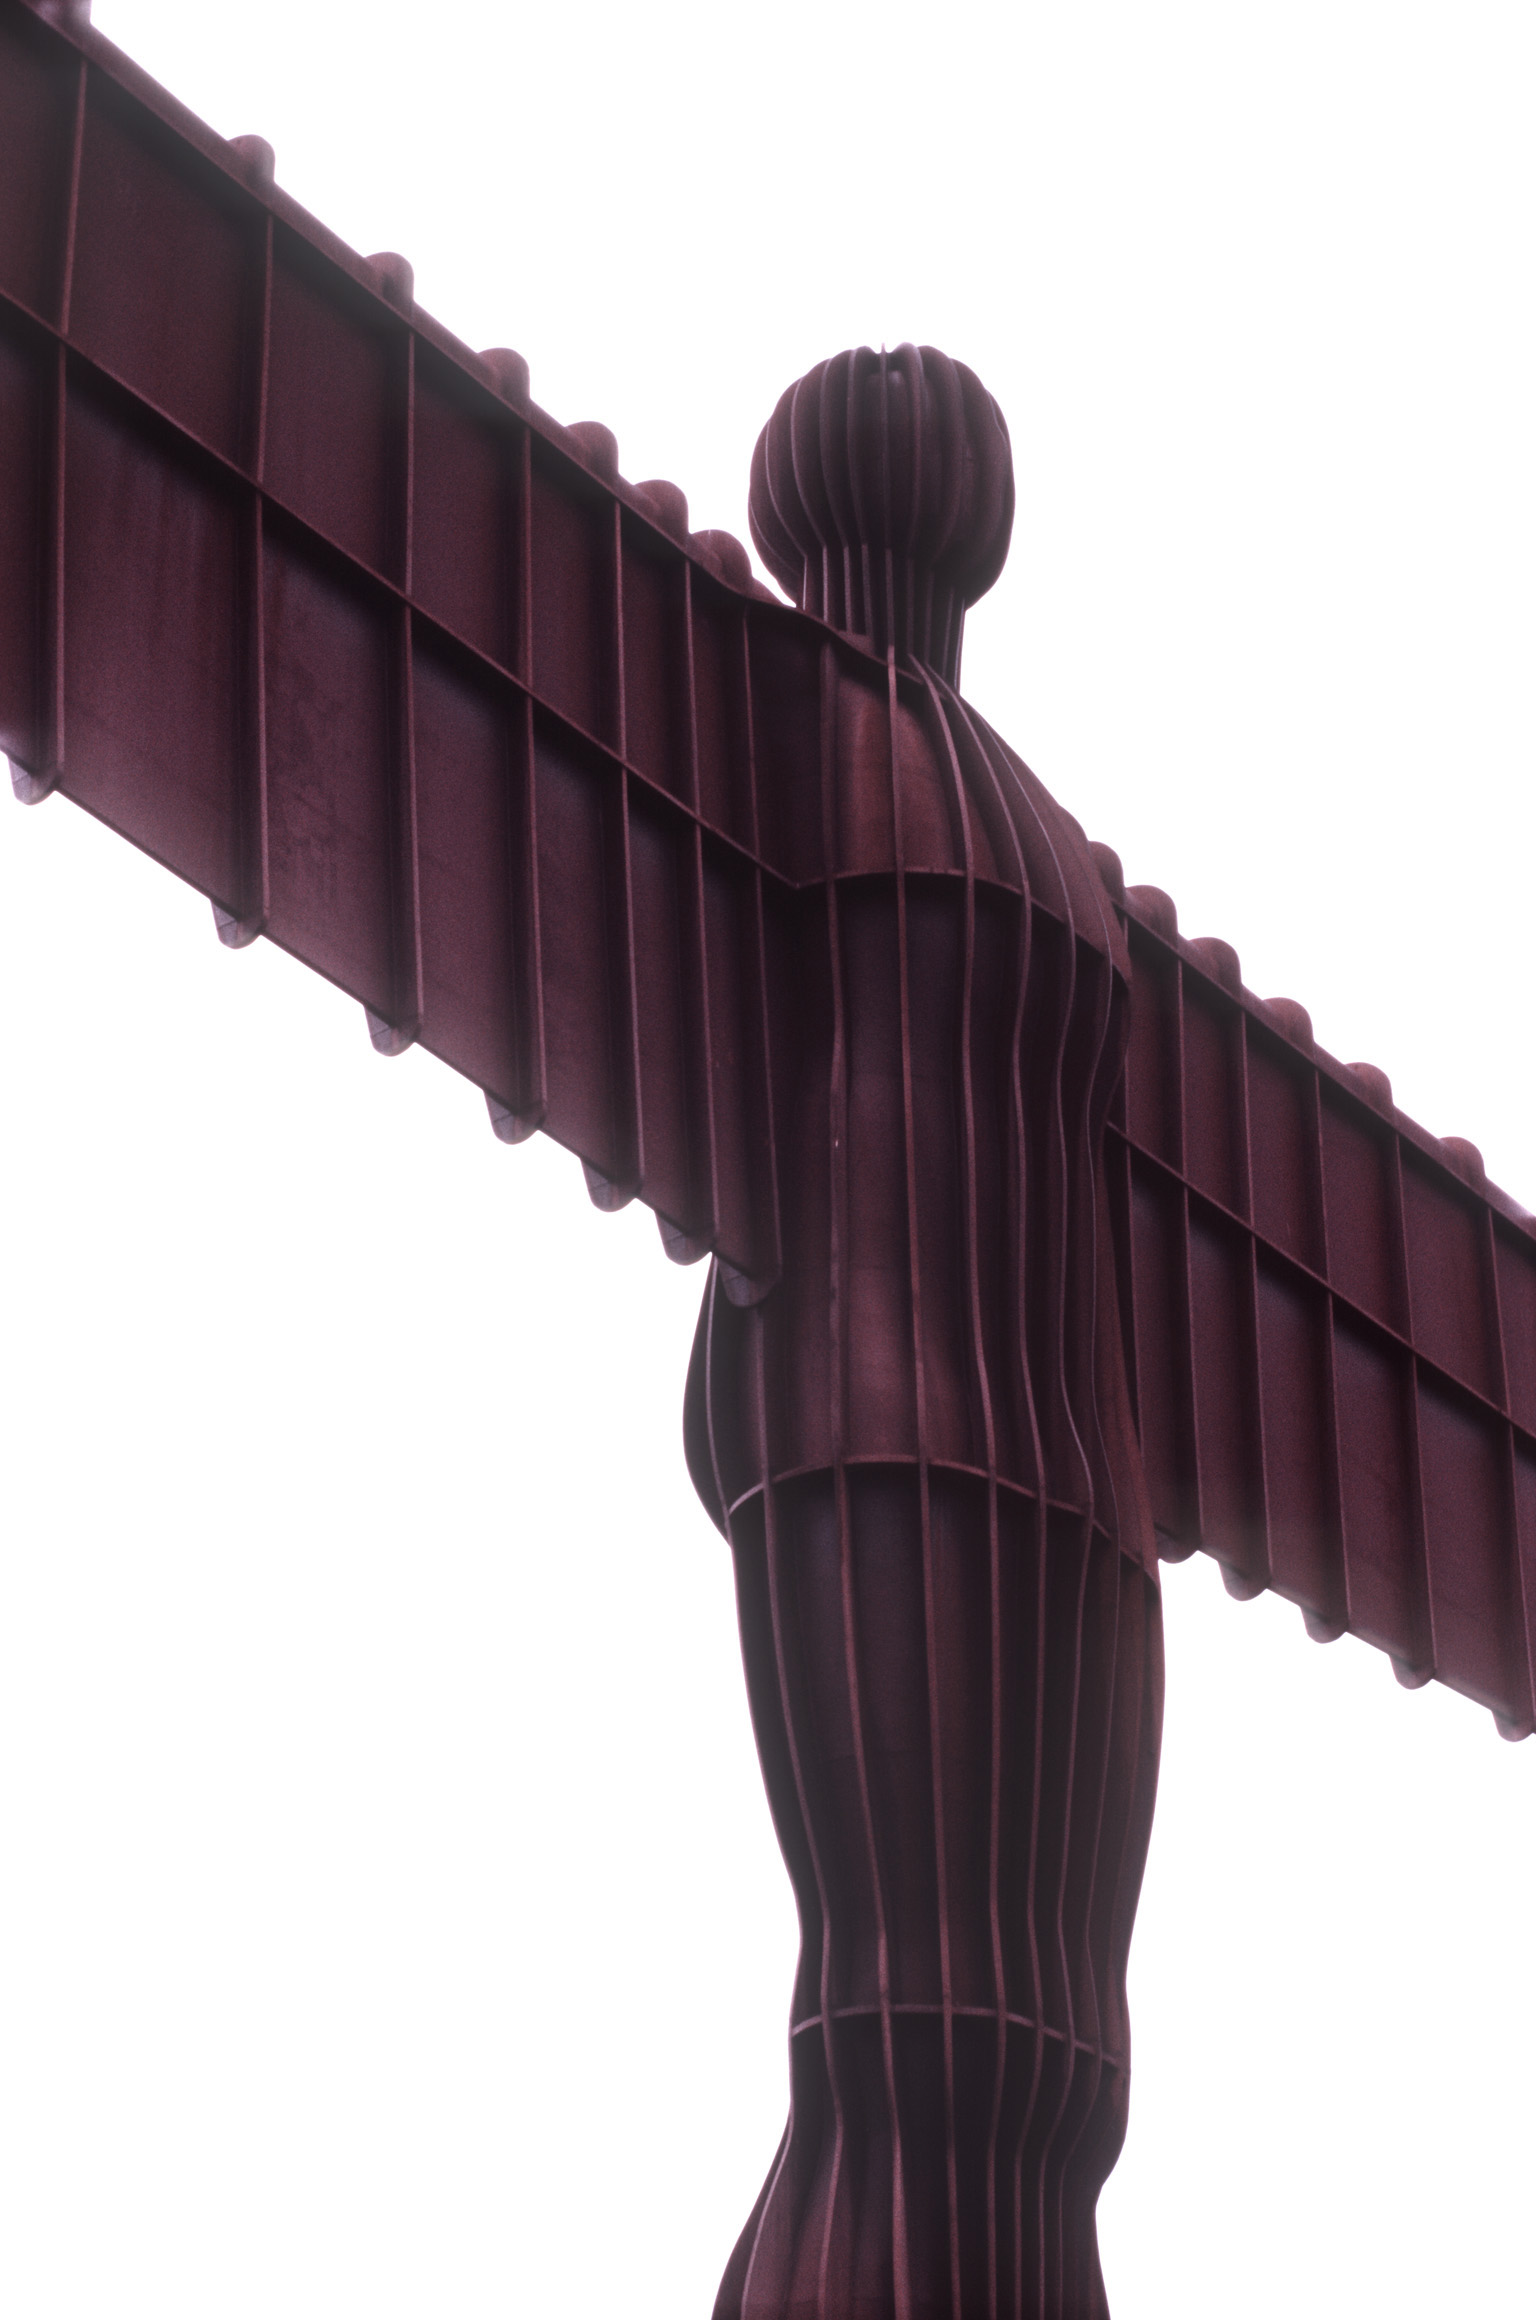 Angel of the North sculpture detail showing the structure of the body and outstretched wings, Gateshead, Newcastle